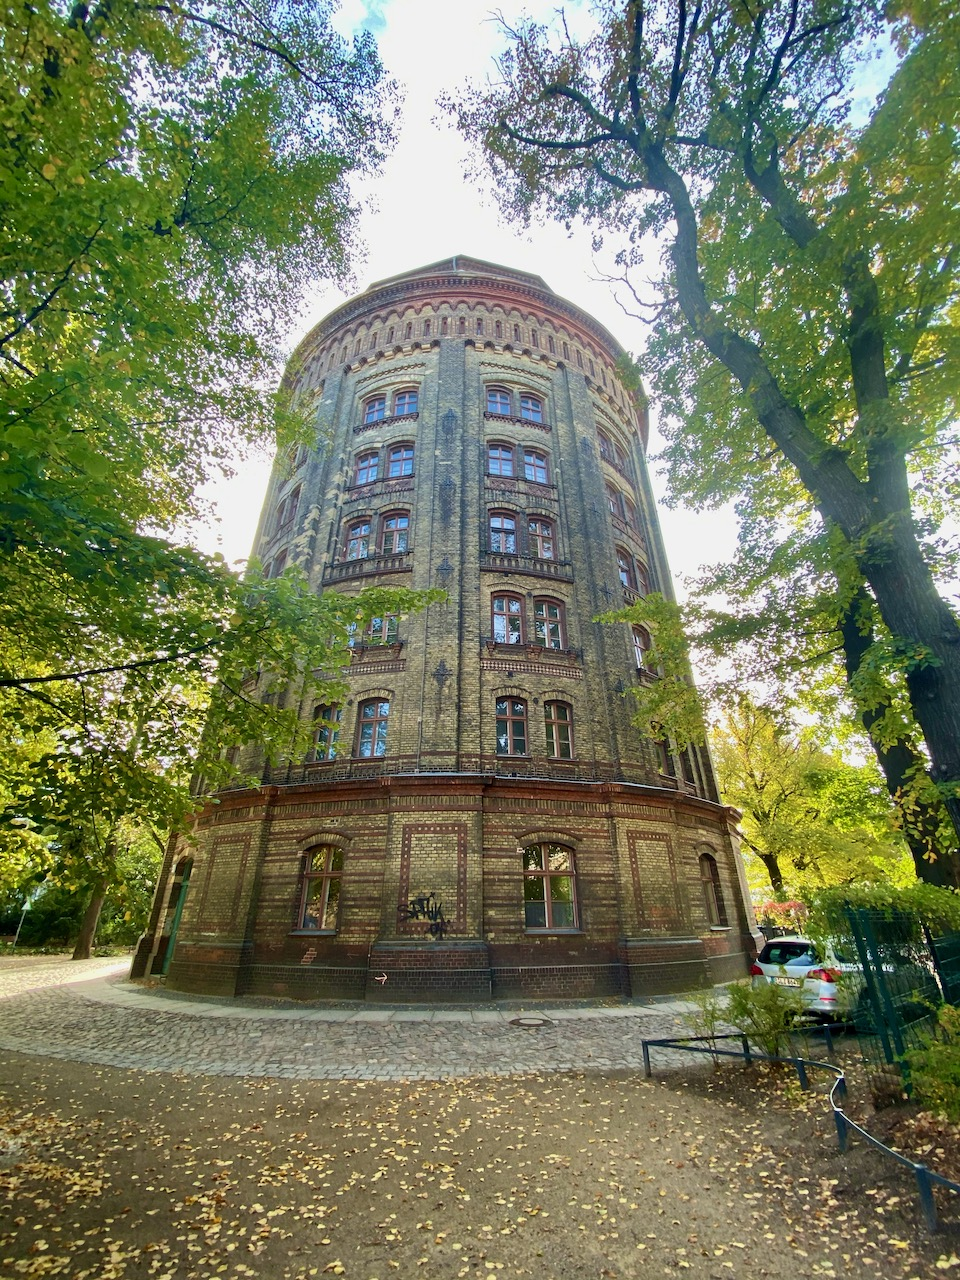 Wasserturm, water tower, Prenzlauerberg